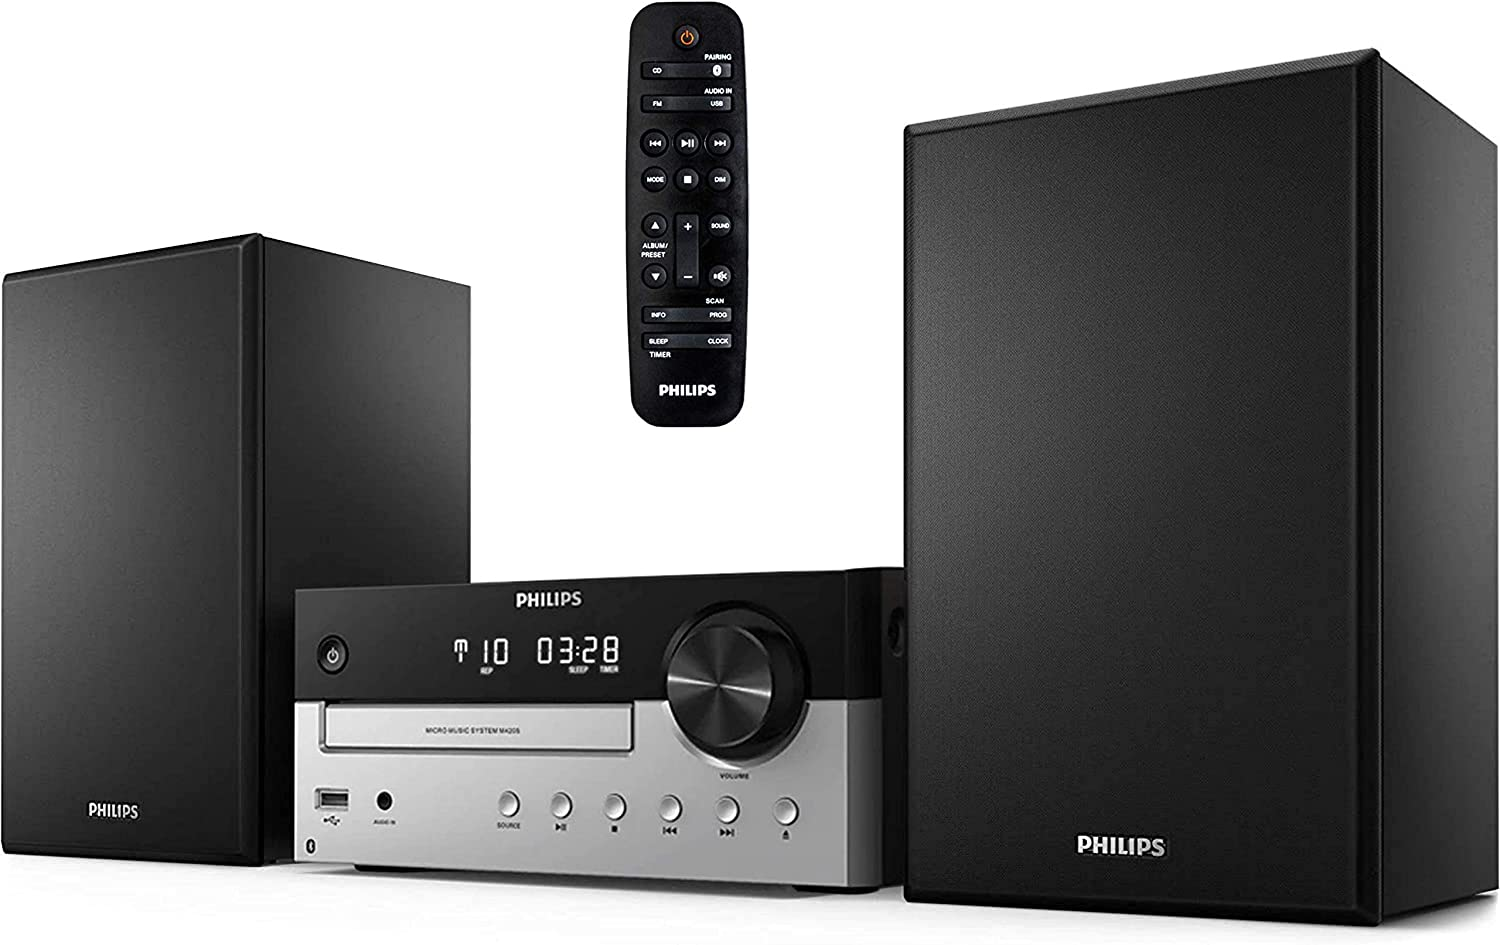 PHILIPS Bluetooth Stereo System for Home with CD Player, MP3, USB, Audio in, FM Radio, Bass Reflex Speaker, 60W, Remote Control Included (Renewed)